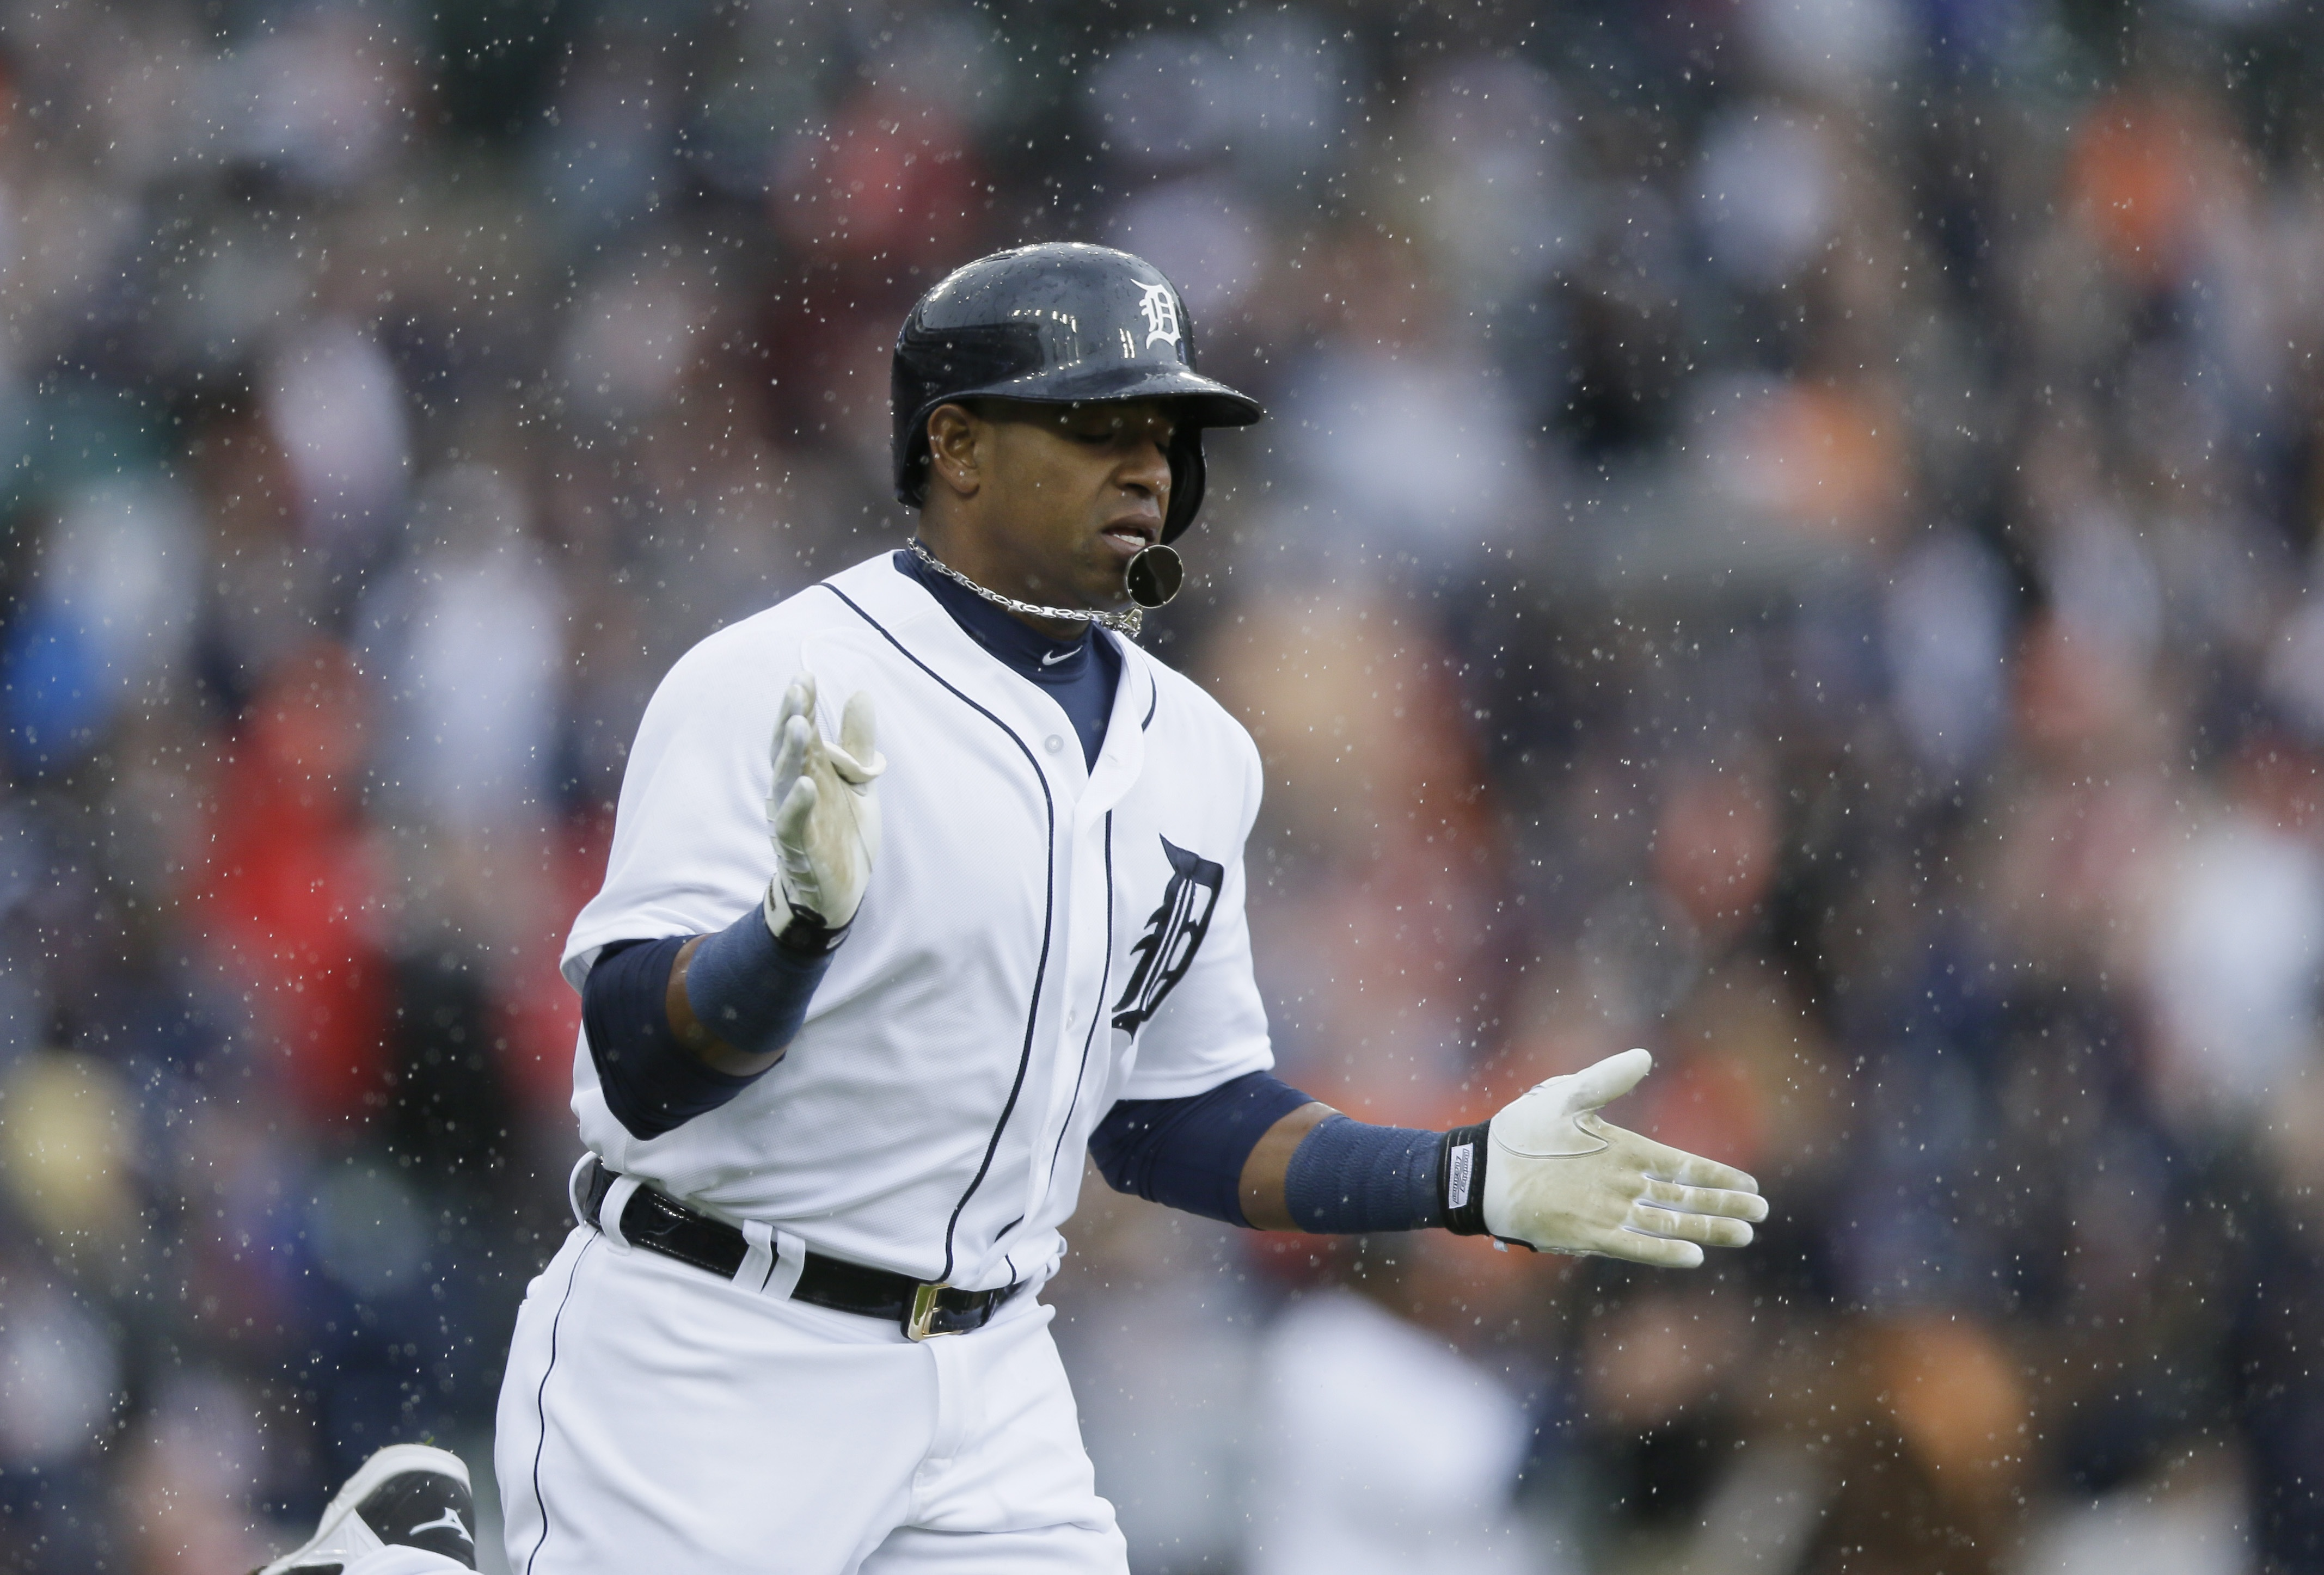 Detroit Tigers' Yoenis Cespedes rounds the bases after his grand slam off Chicago White Sox pitcher Jose Quintana during the first inning of a baseball game, Sunday, April 19, 2015, in Detroit. (AP Photo/Carlos Osorio)